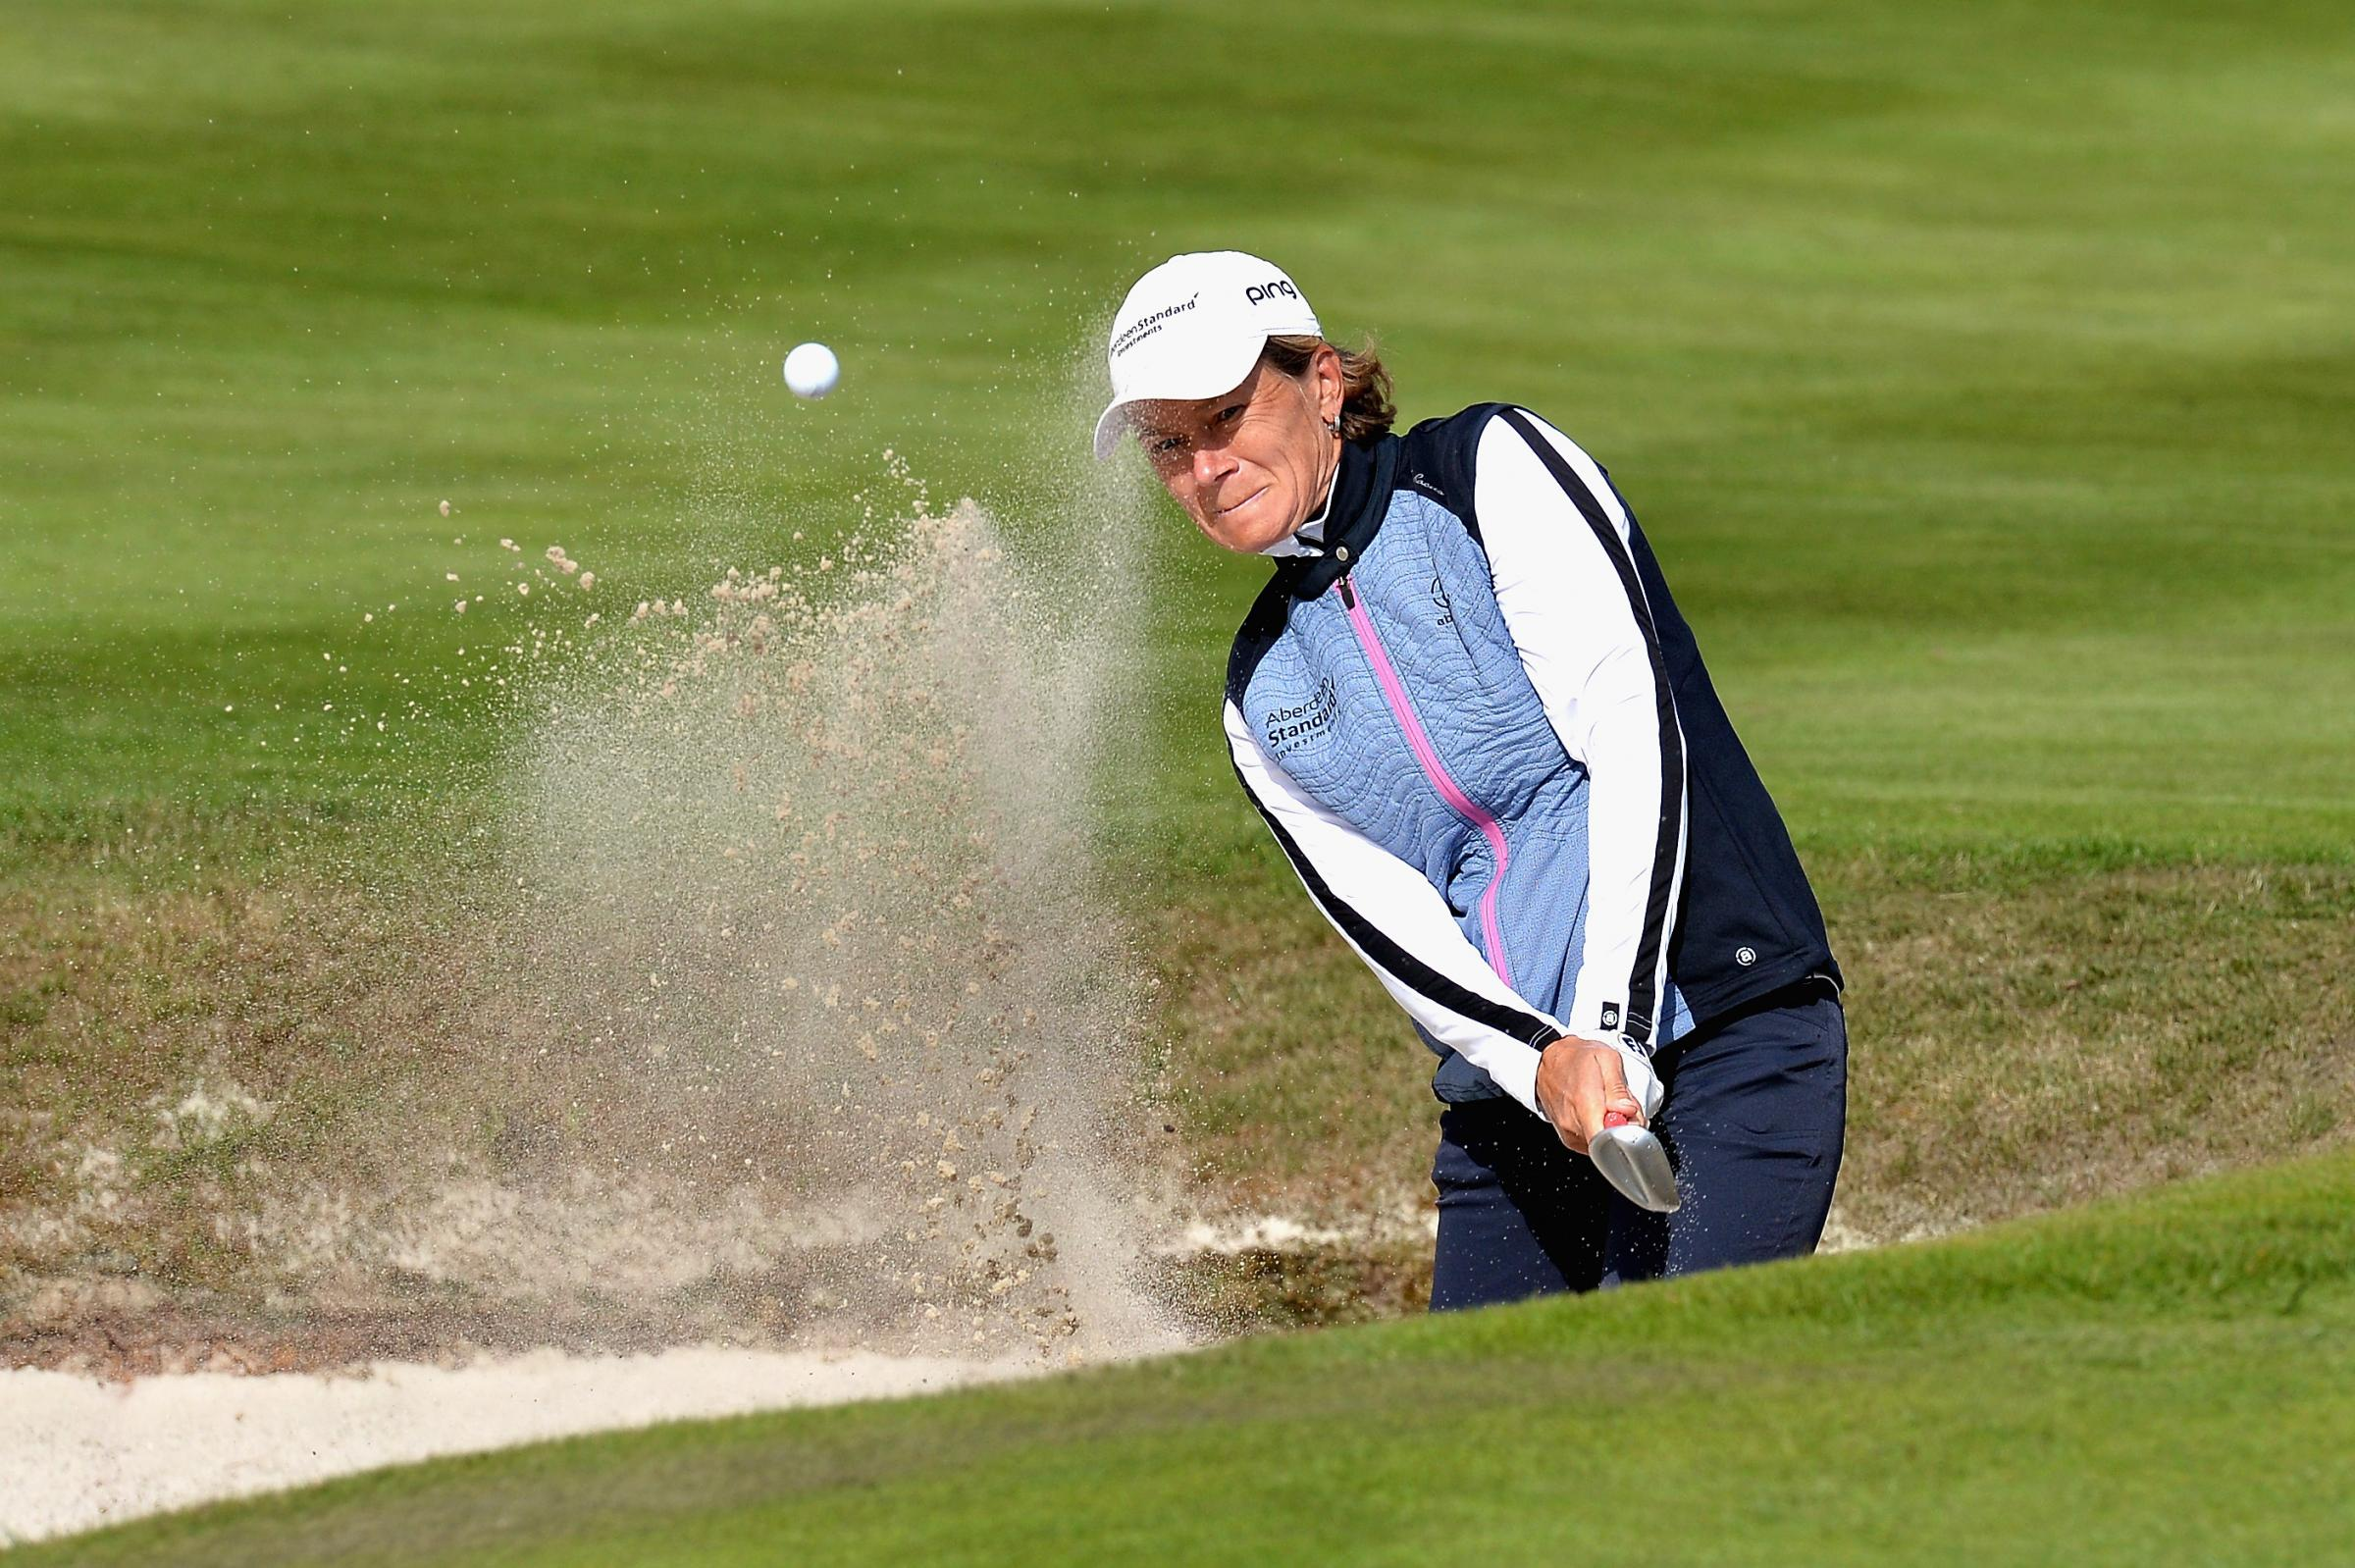 Top cat: Catriona Matthew helped her Team GB to another win at Gleneagles (Picture: Getty)